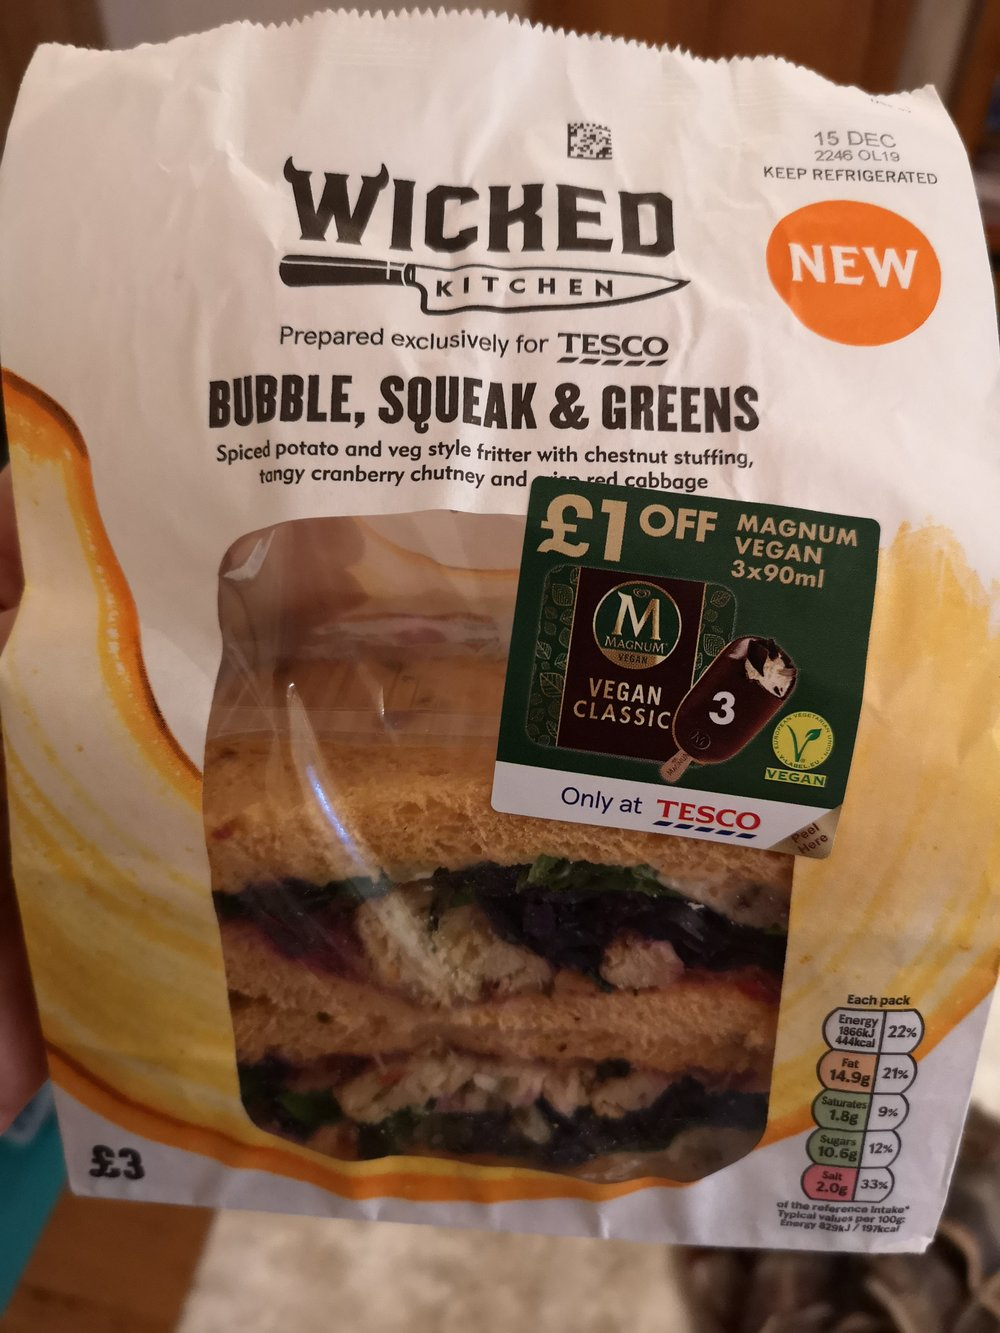 Wicked Kitchen Christmas Bubble & Squeak Sandwich -